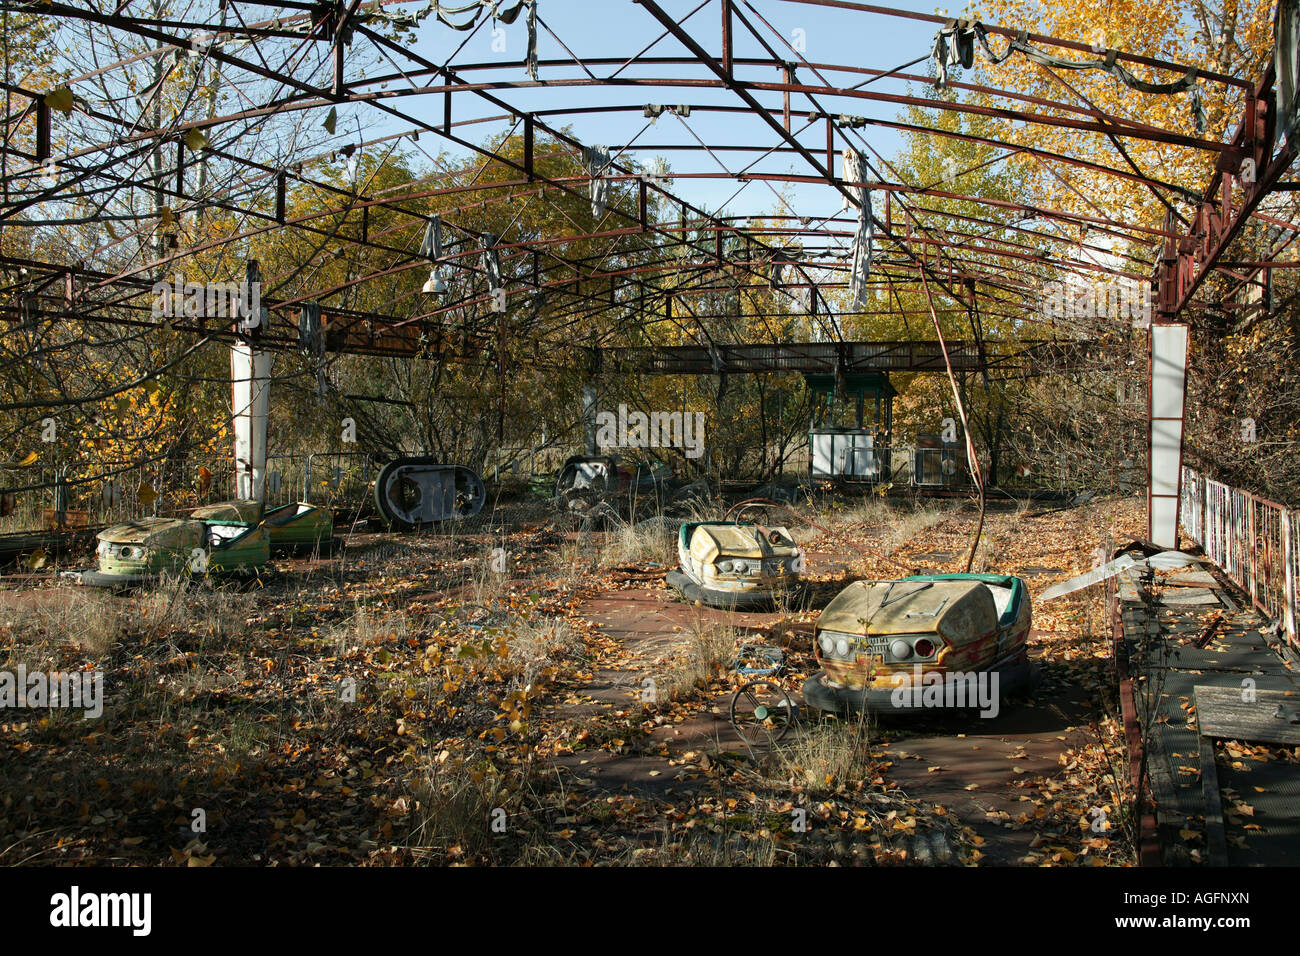 Abandoned dodgem cars Prypiat Chernobyl exclusion zone - Stock Image